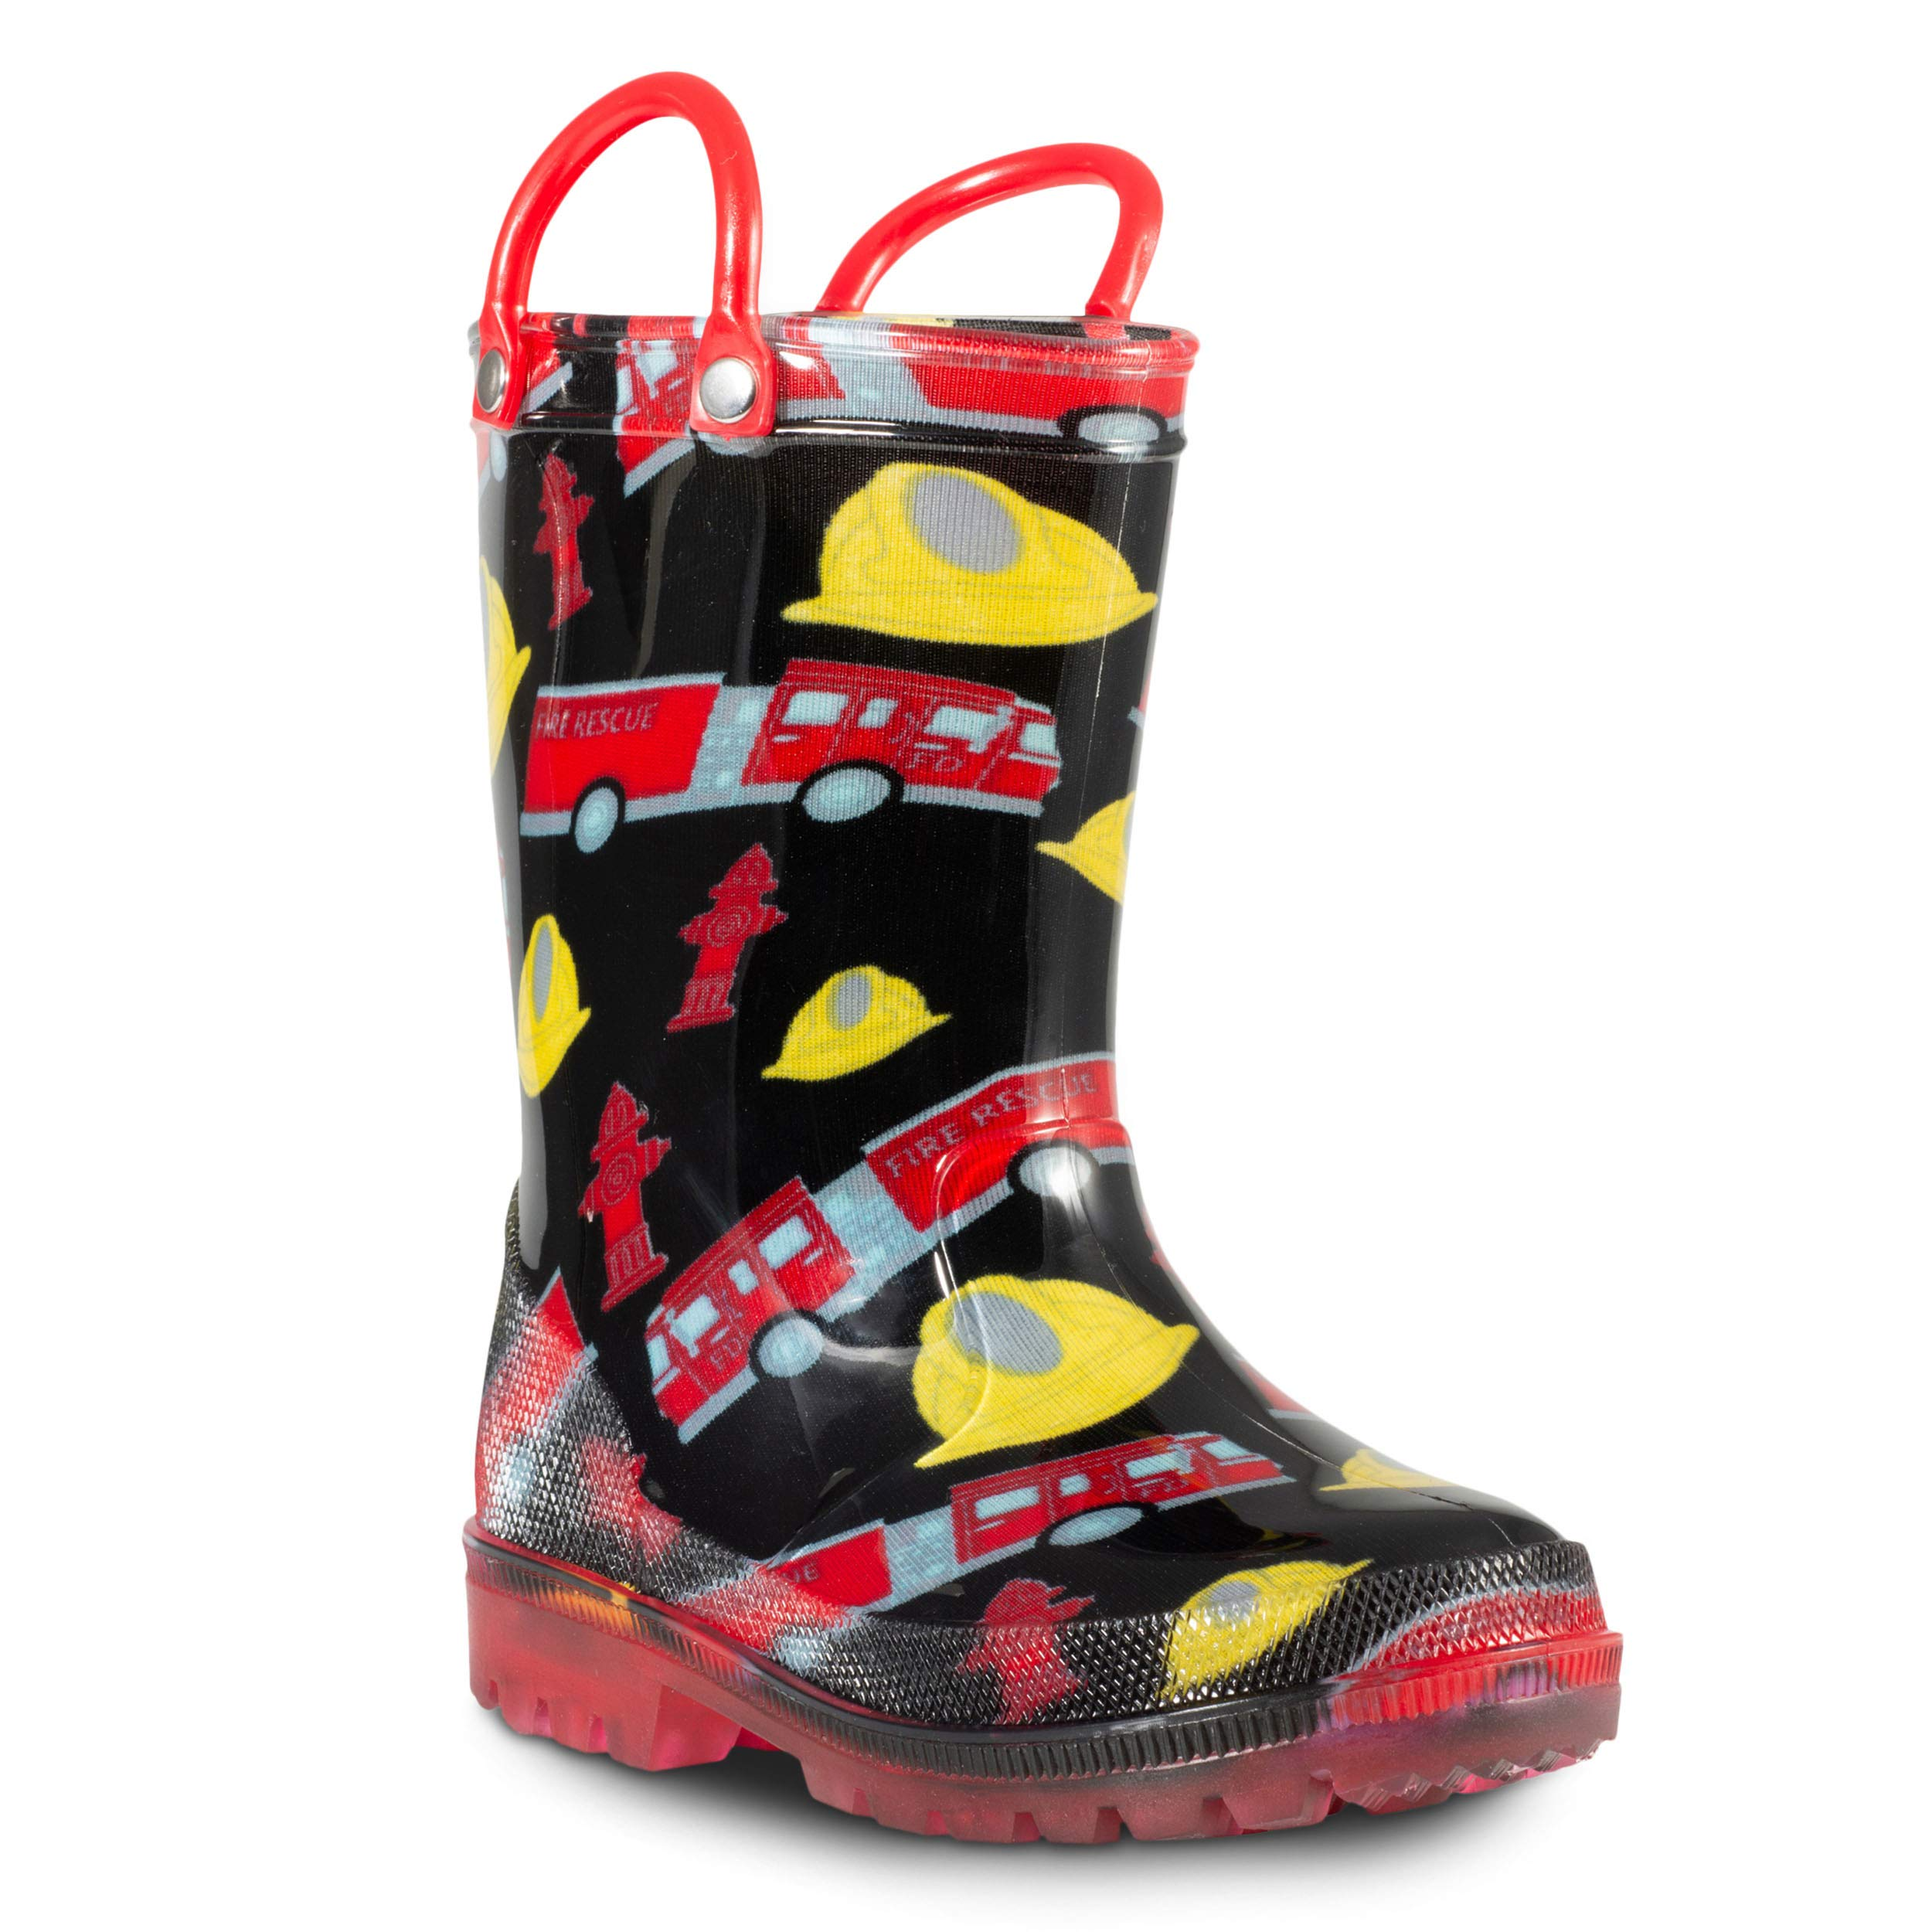 ZOOGS Children's Light Up Rain Boots for Little Kids & Toddlers, Boys & Girls by ZOOGS (Image #1)